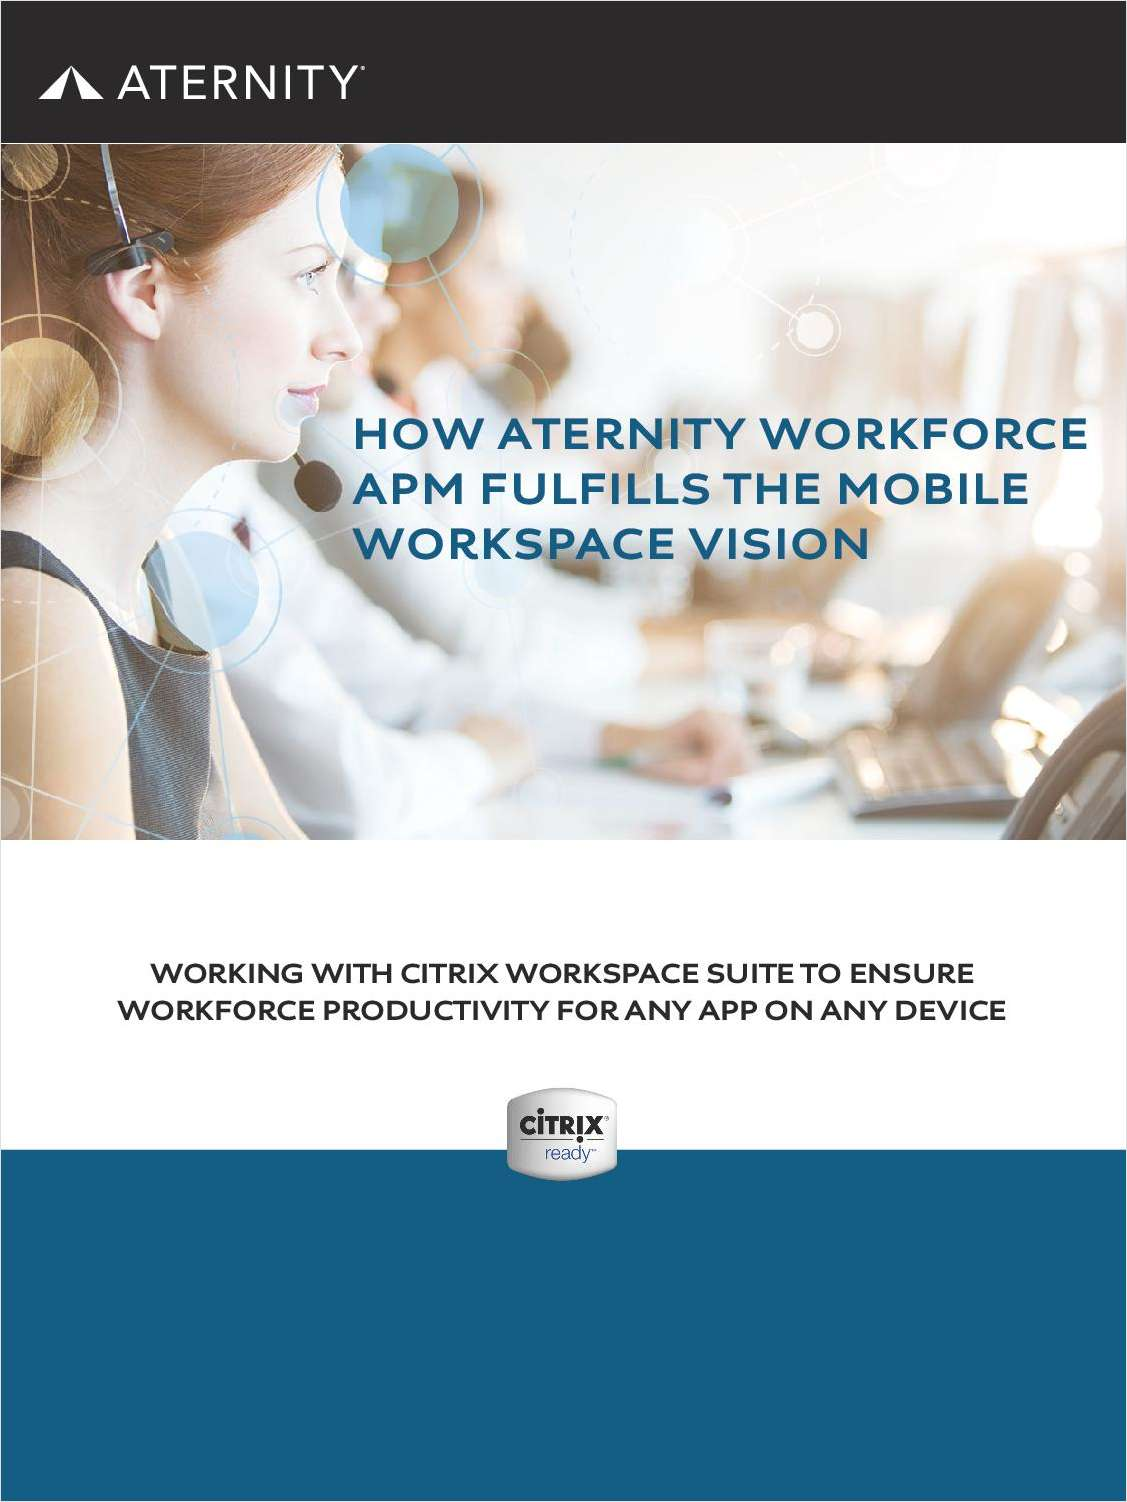 How Aternity Workforce APM Fulfills the Mobile Workspace Vision